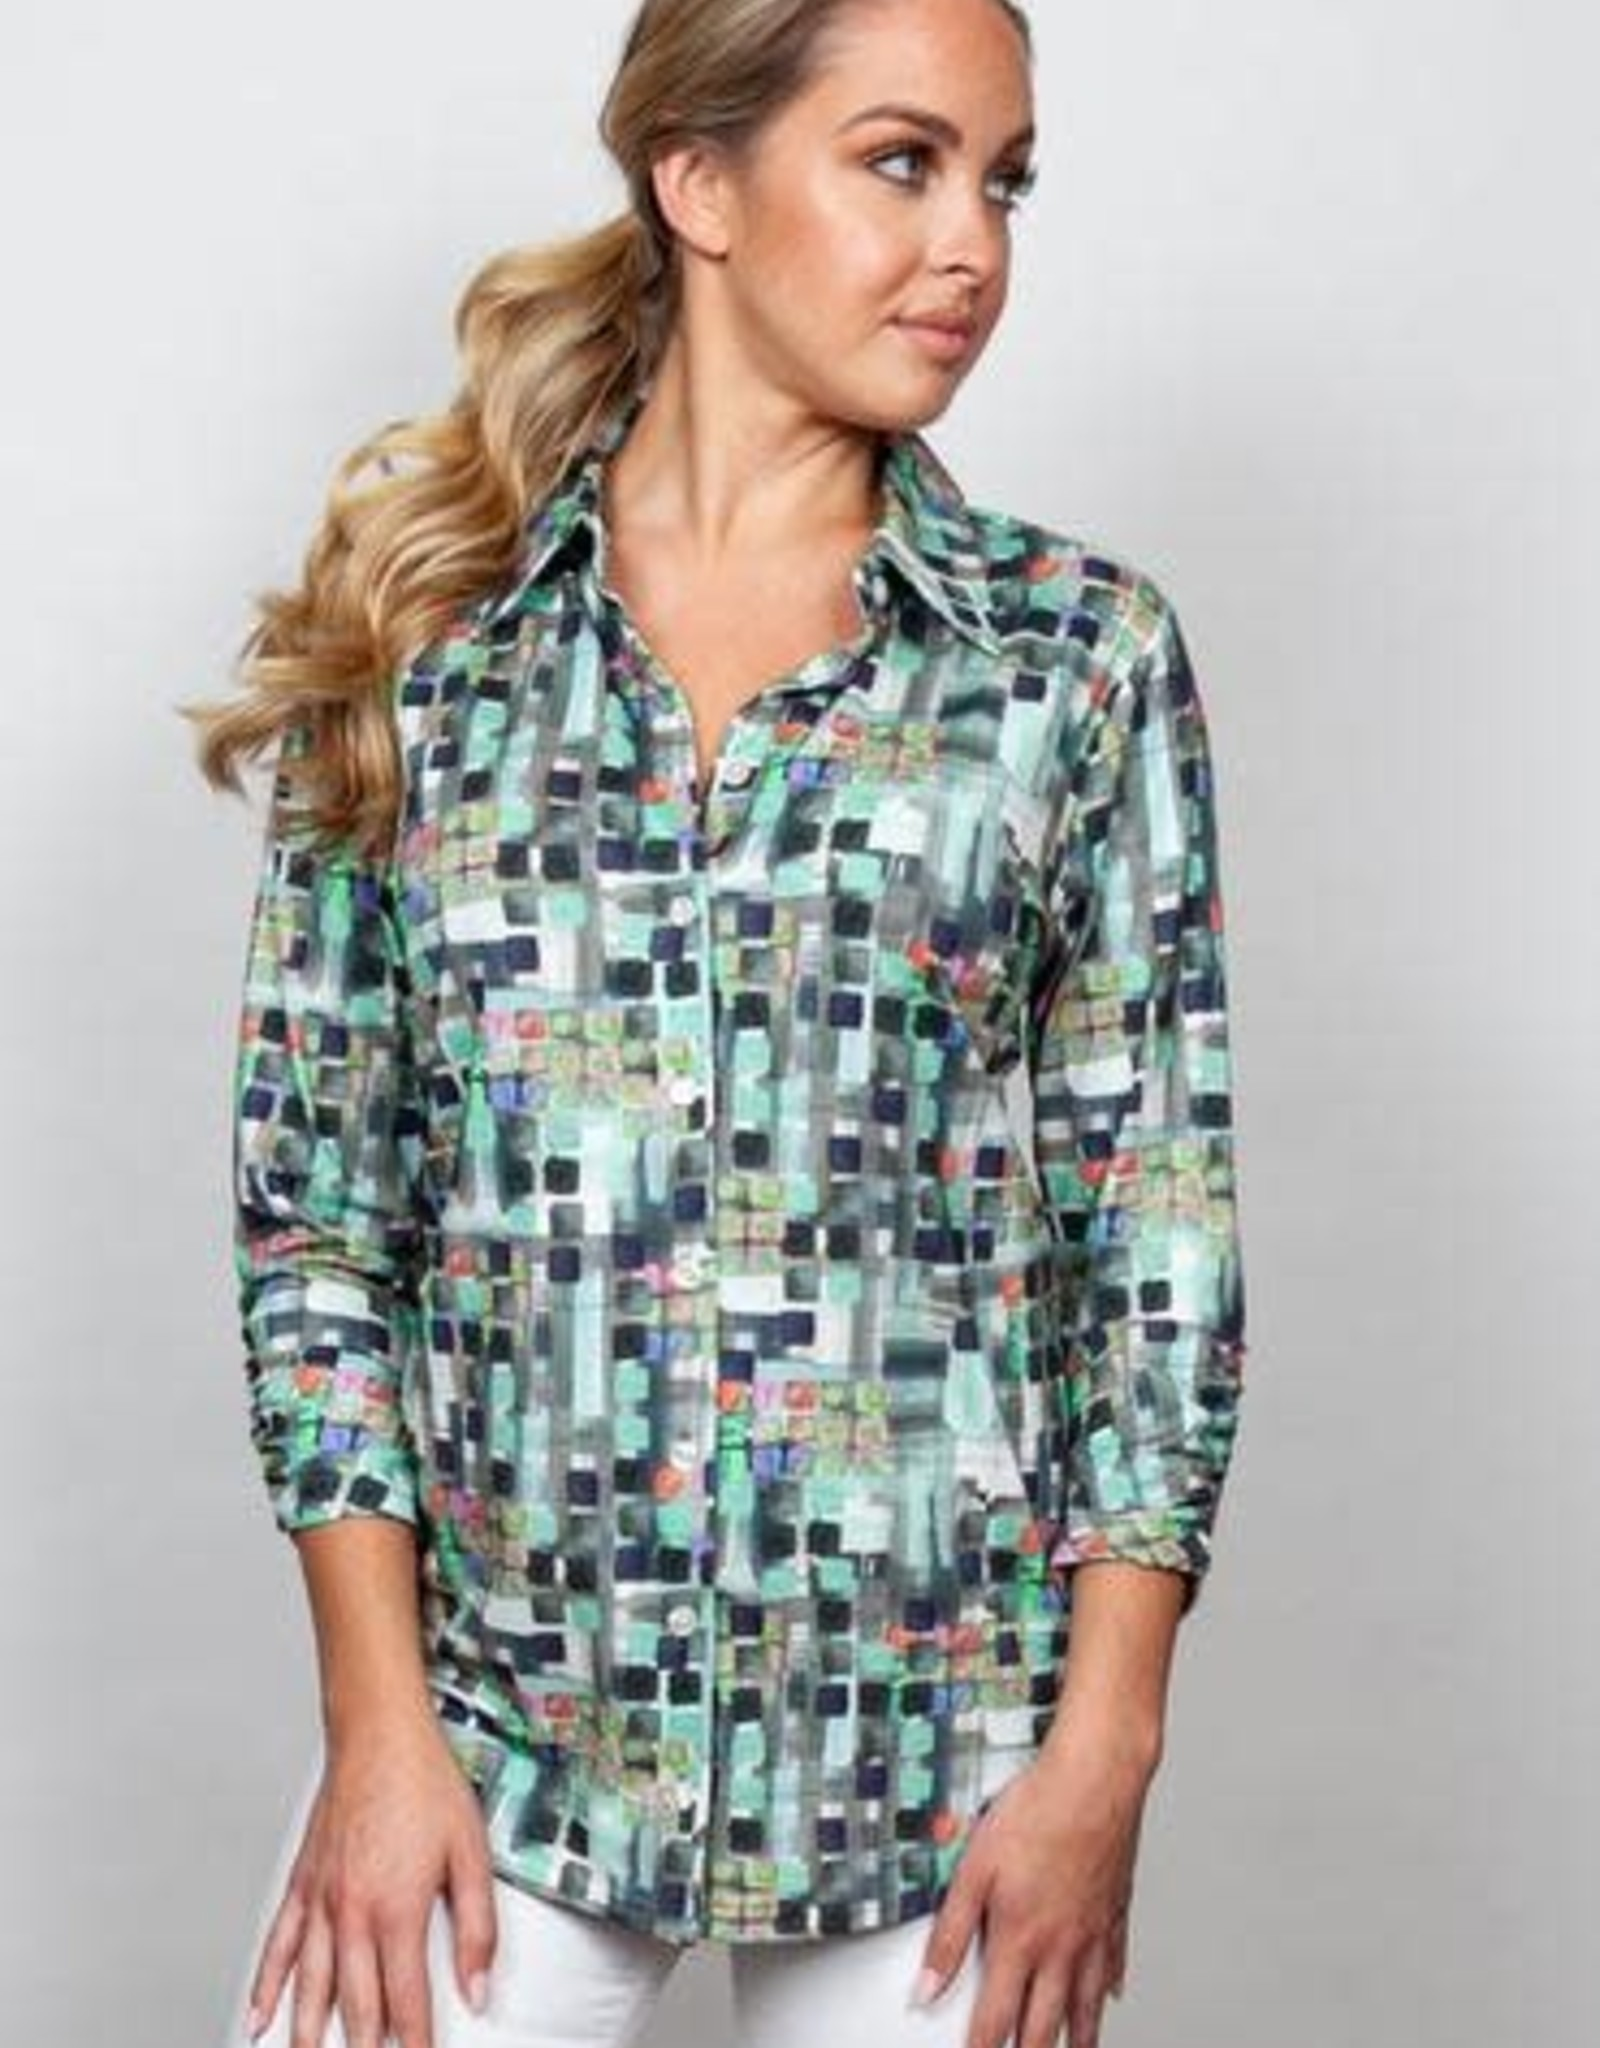 Snoskins Mosaic Button Down Top